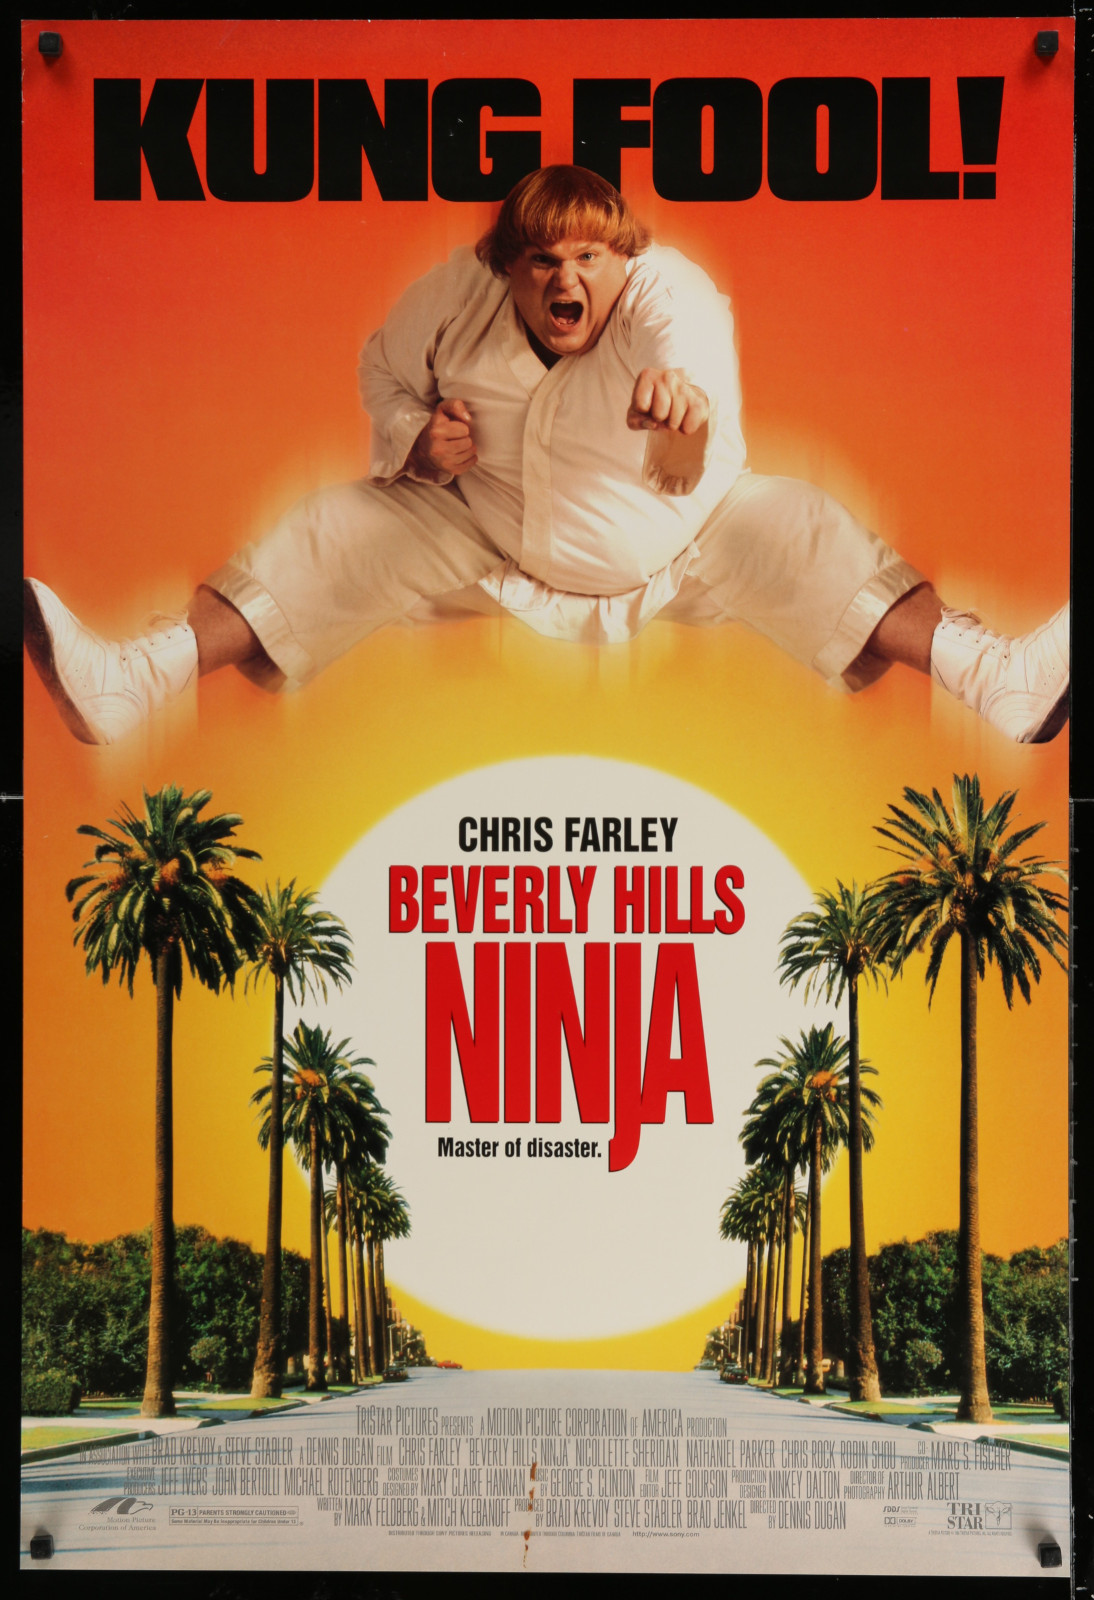 Beverly Hills Ninja 2A438 A Part Of A Lot 18 Unfolded Double-Sided 27X40 Mostly Comedy One-Sheets '90S-00S Great Movie Images!